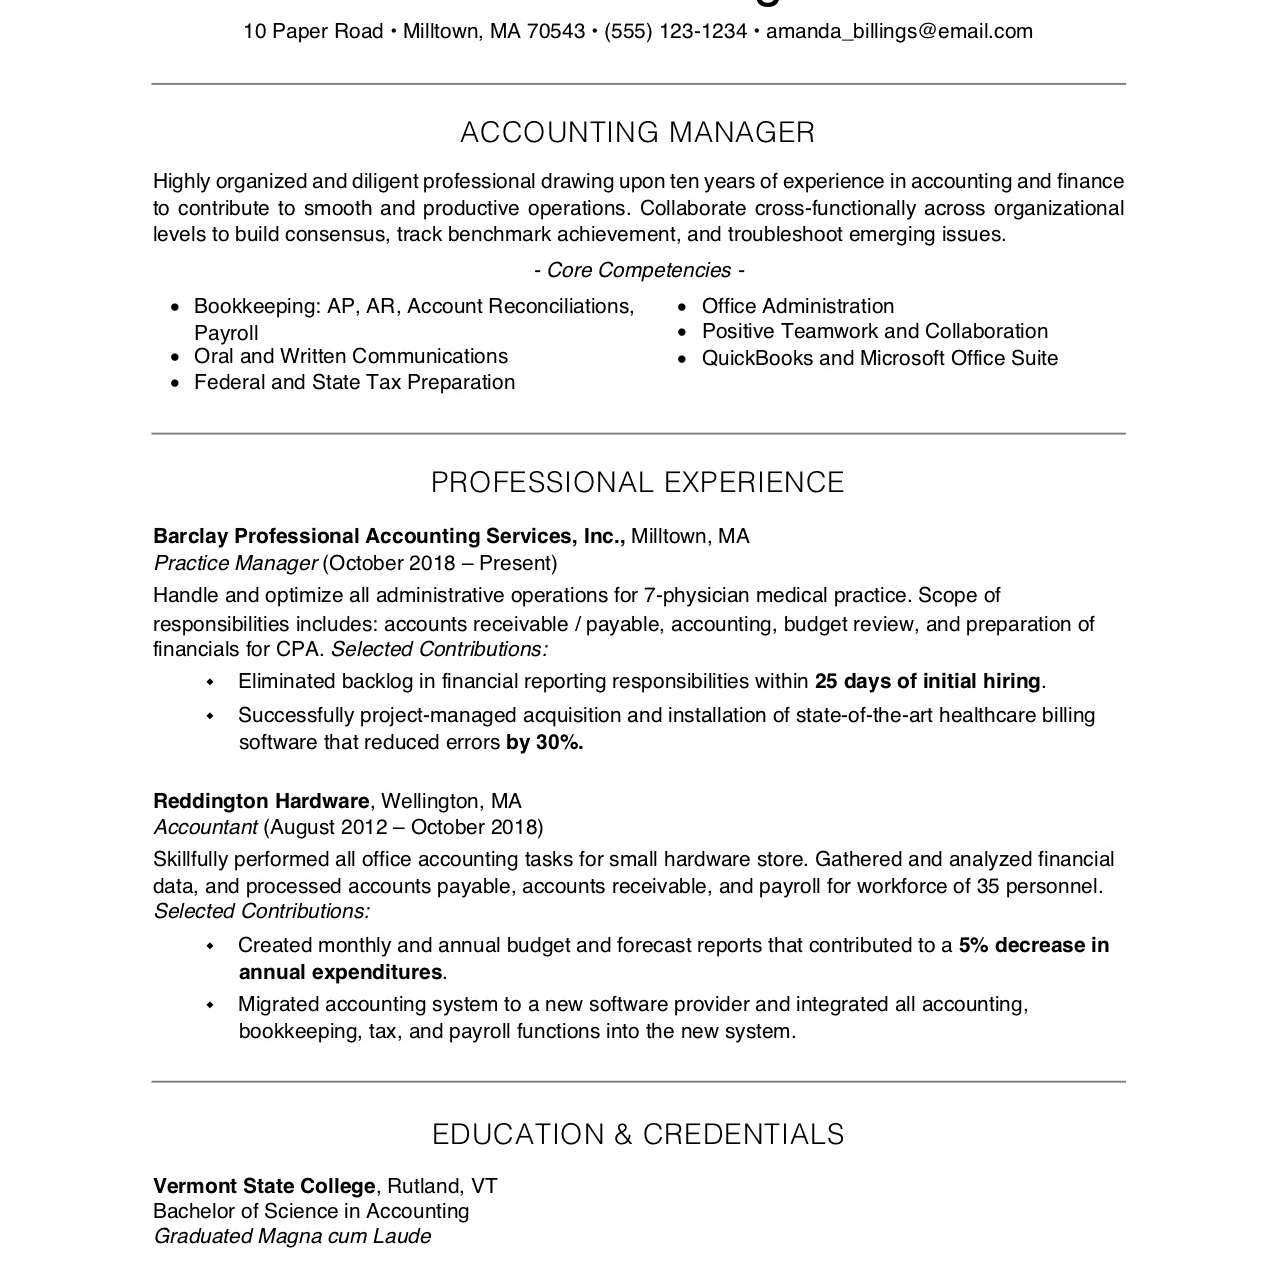 free professional resume examples and writing tips sample good format 2063596res1 Resume Sample Good Resume Format